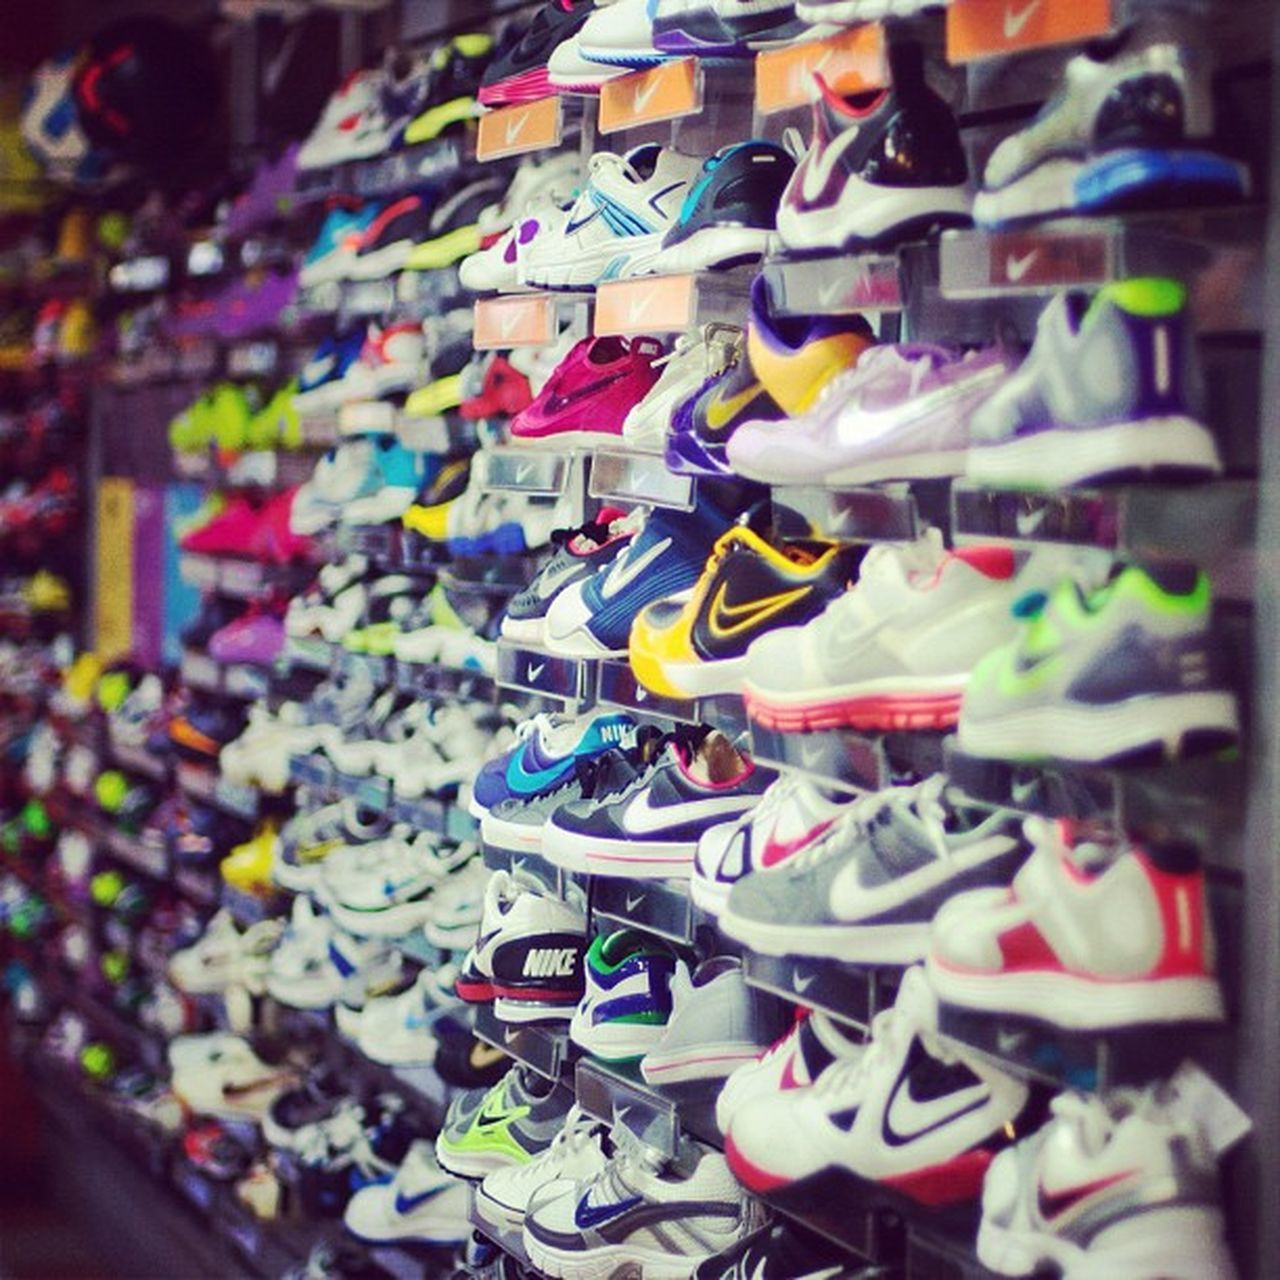 retail, variation, for sale, store, large group of objects, abundance, in a row, shoe, multi colored, fashion, choice, display, no people, consumerism, shelf, collection, market, hanging, business, indoors, day